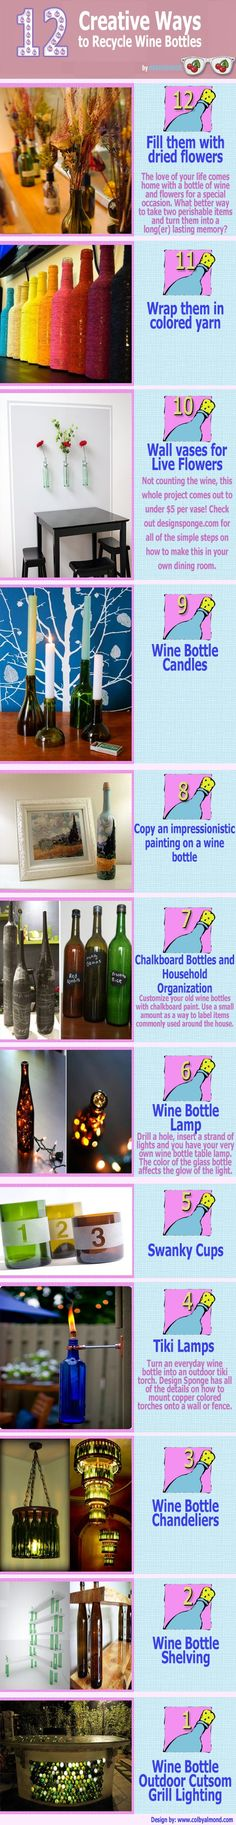 recycle wine bottles - fun ways to recycle!